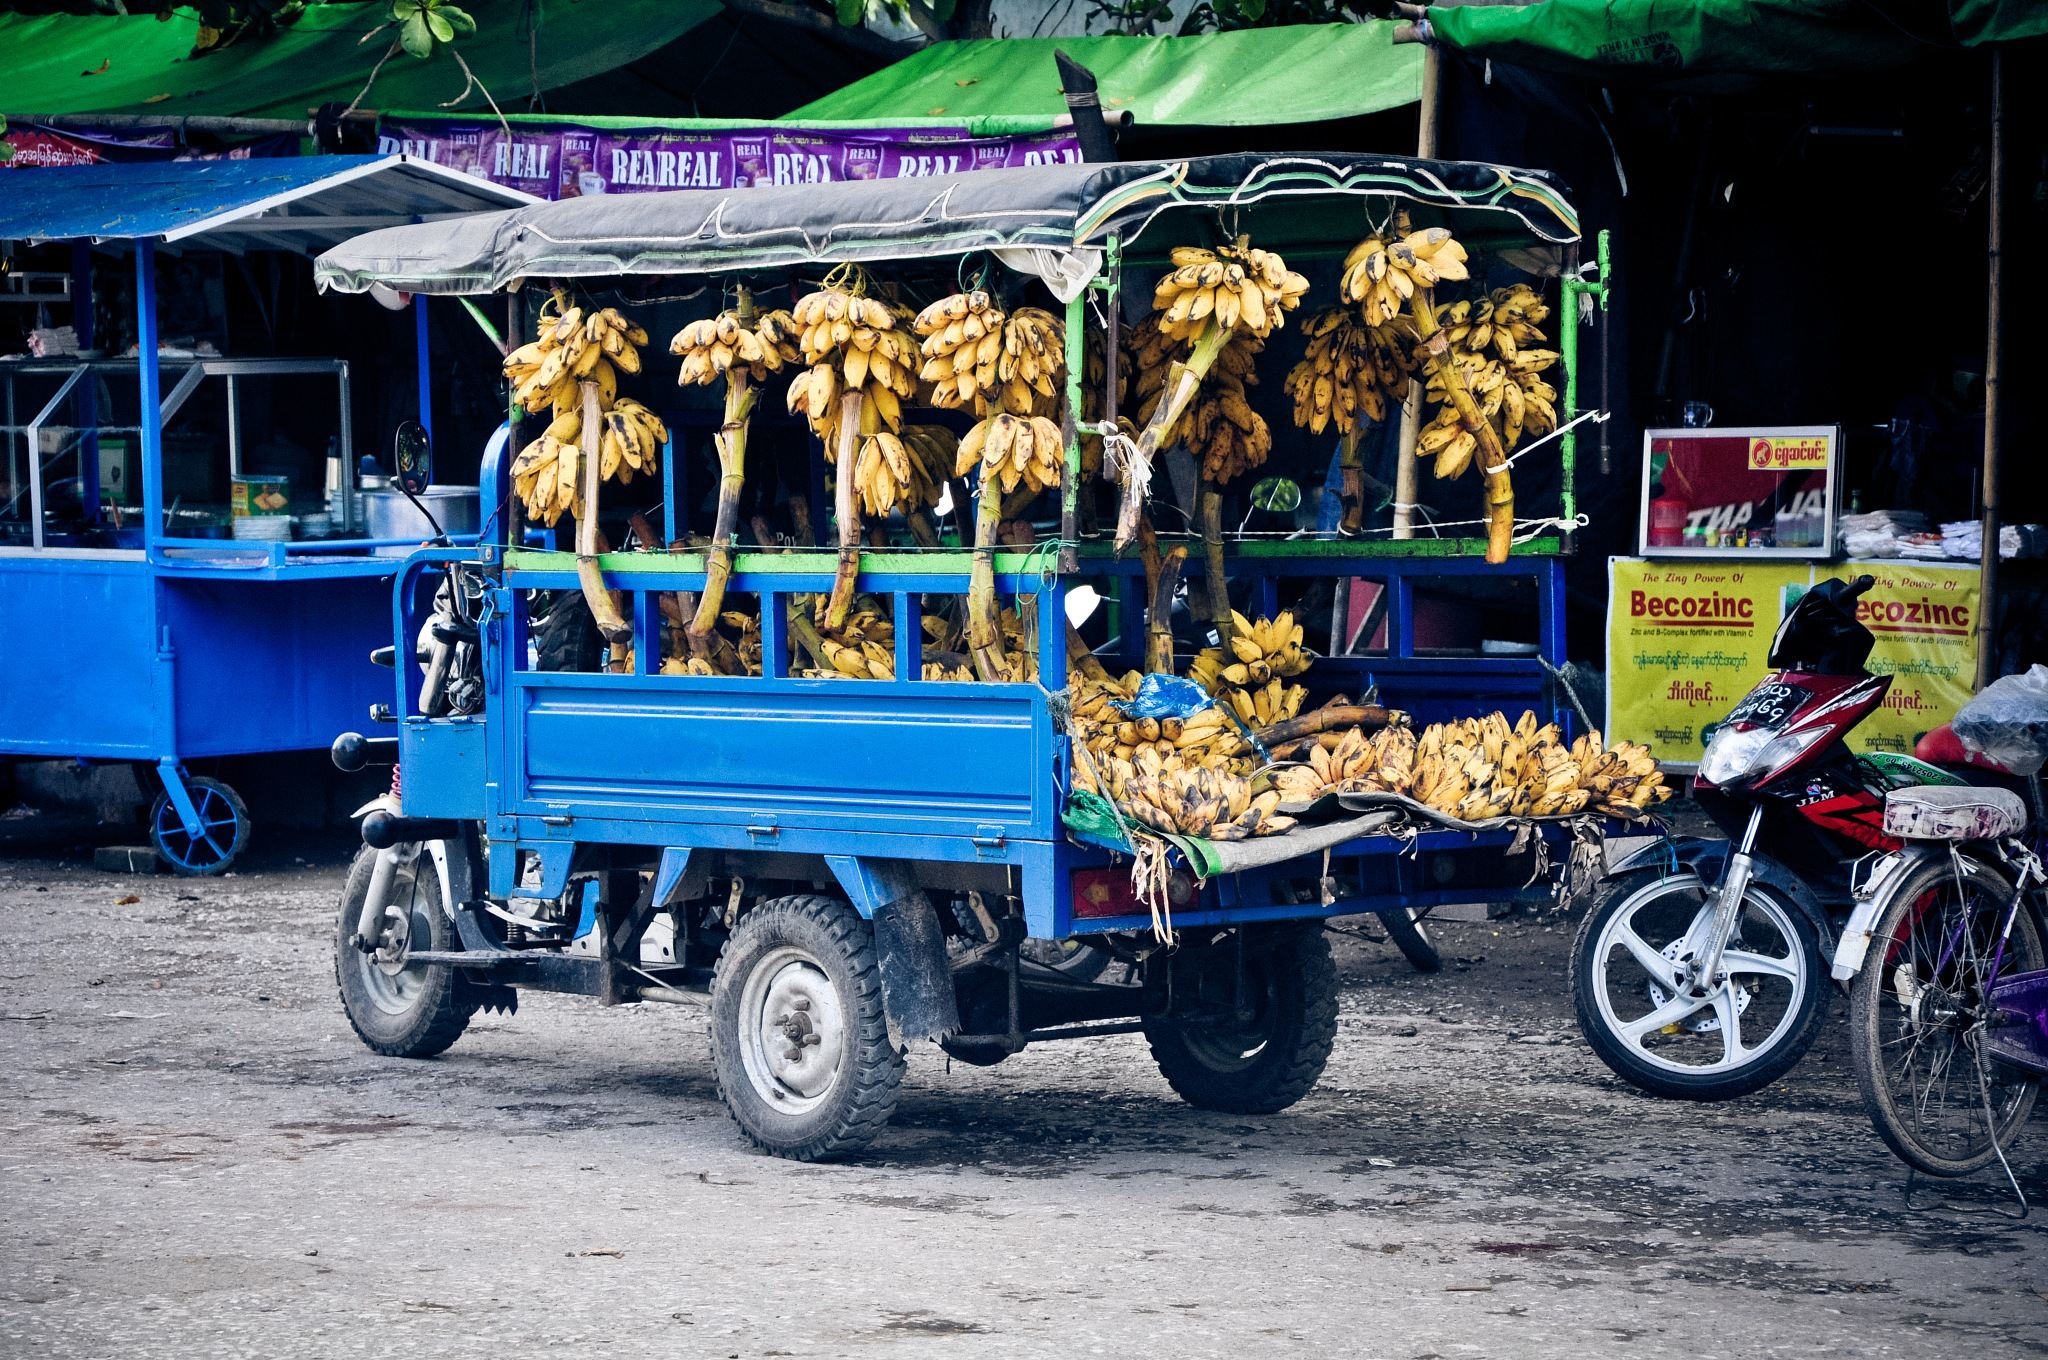 Fresh Bananas (Myanmar) by Jiri Bielicky